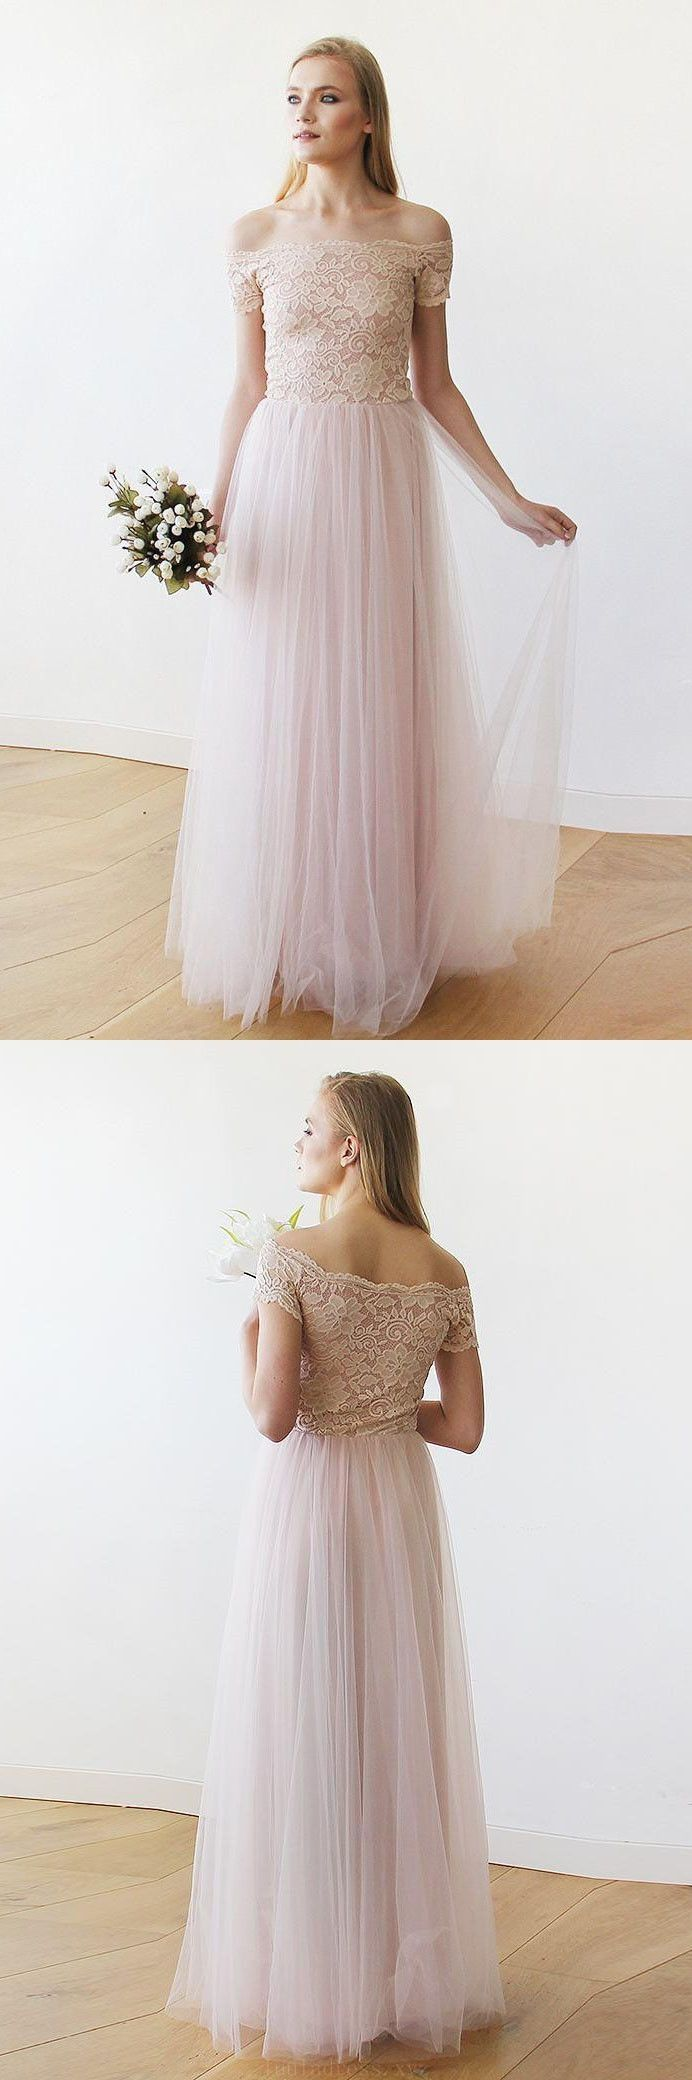 Pink lace wedding dress  Discount Delightful Pink Wedding Dresses Off The SHoulder Pink Lace